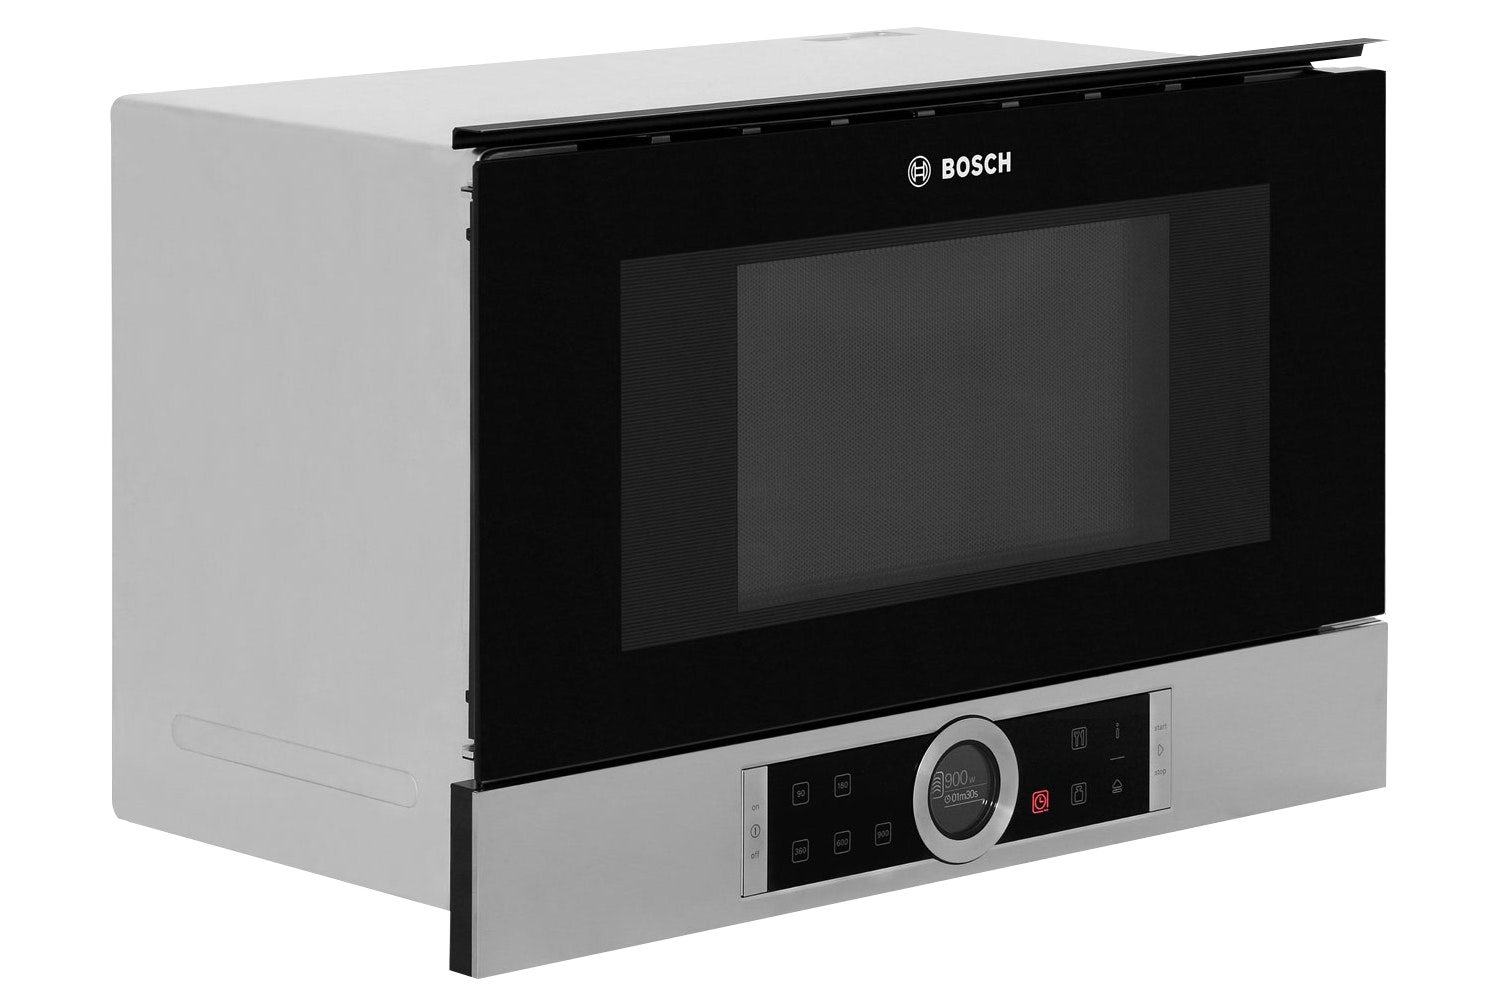 Bosch Series 8 21L 900W Built In Microwave | BFL634GS1B | Black